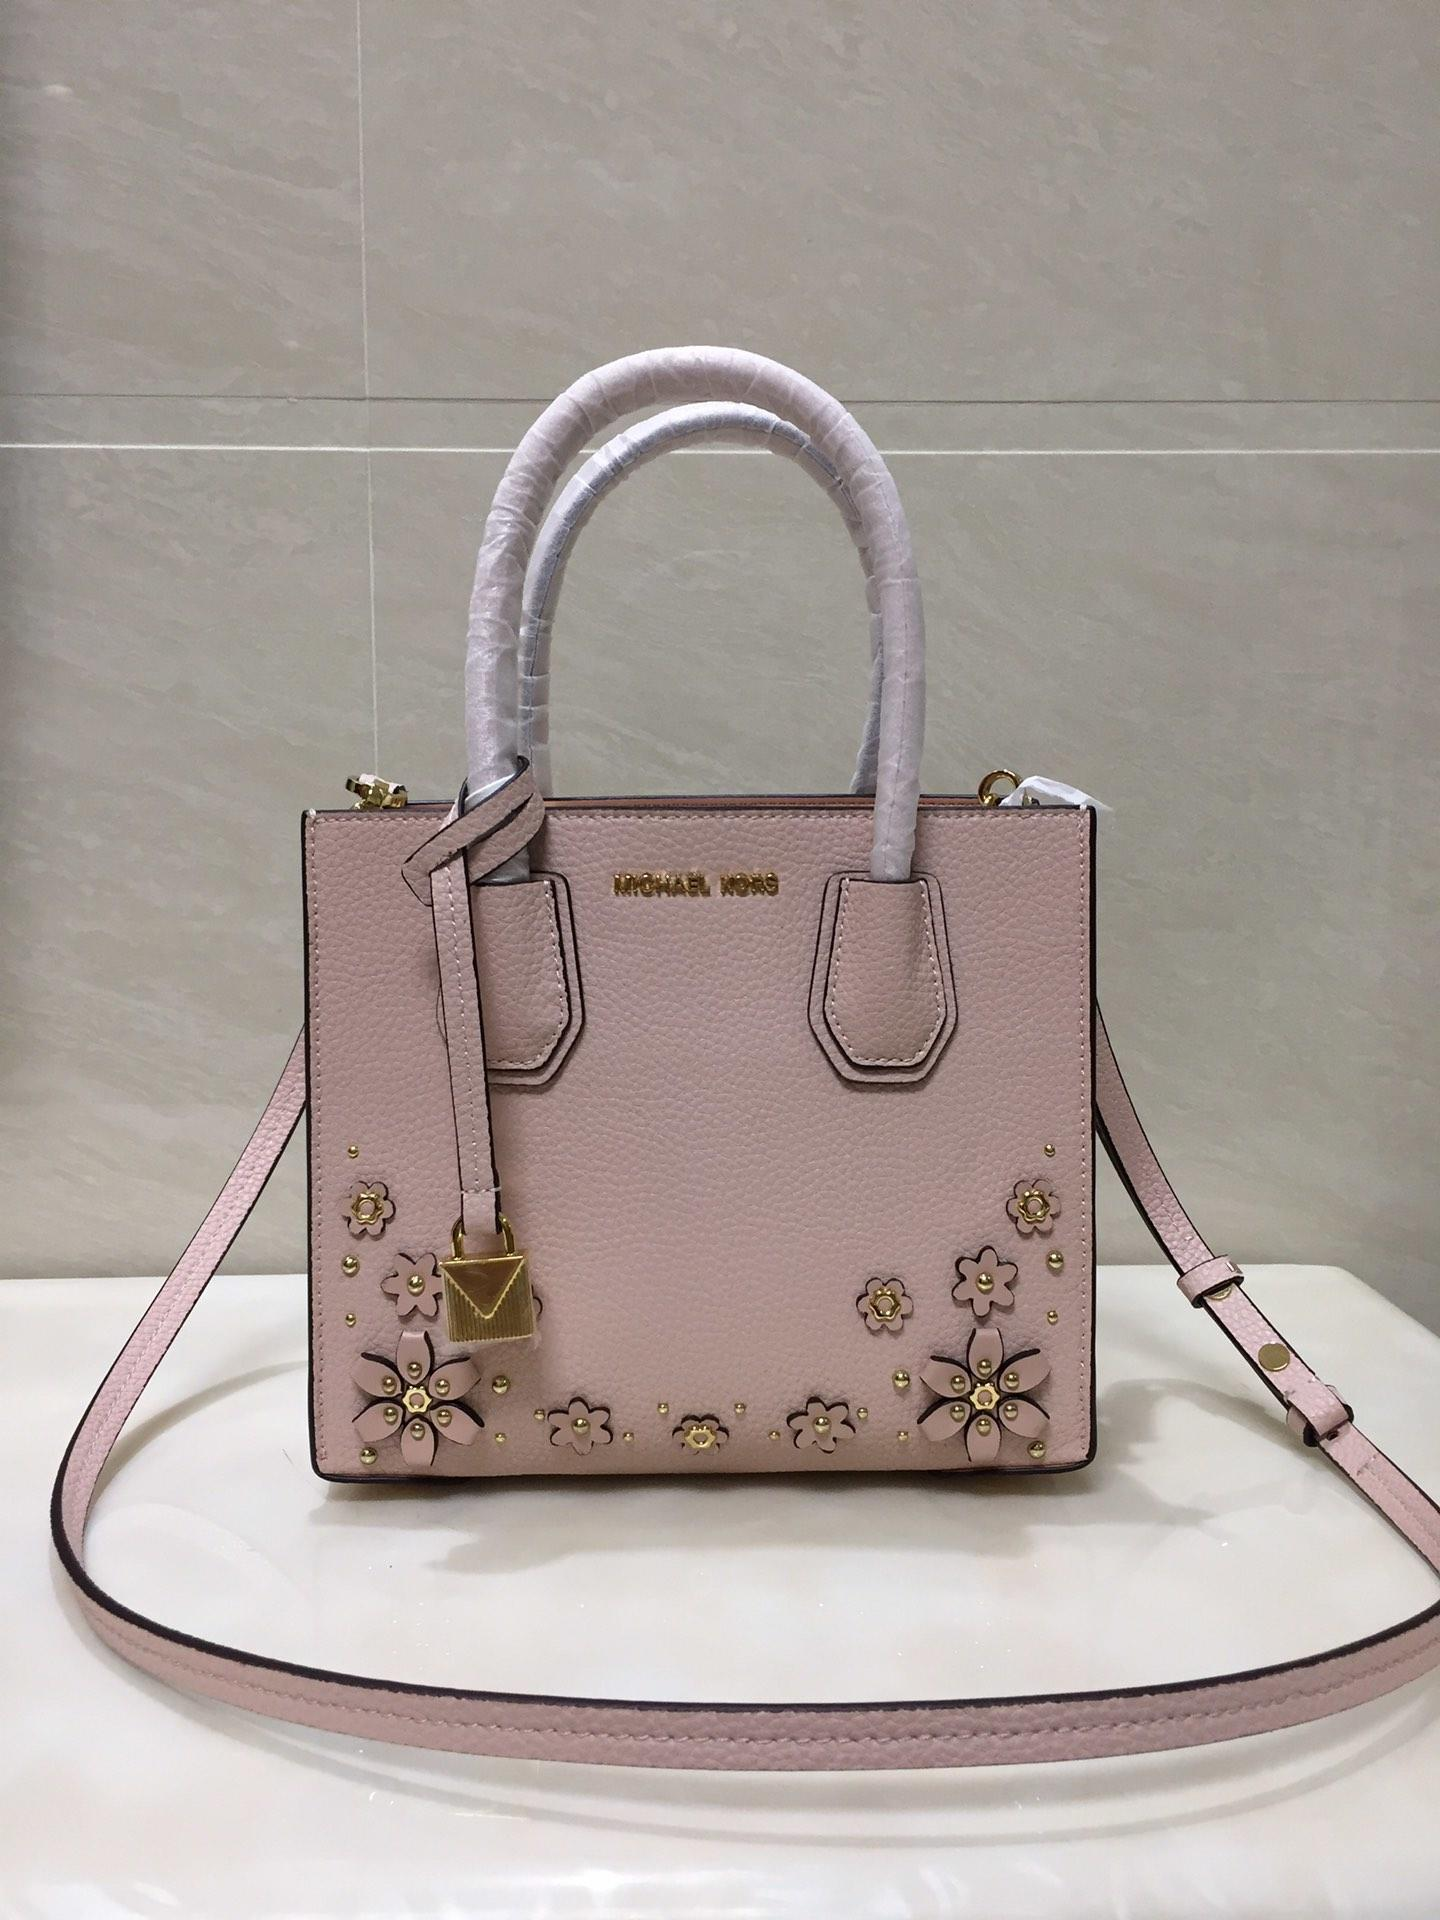 2018 New Replica Michael Kors Mercer Leather Tote Bag With Flower Pink